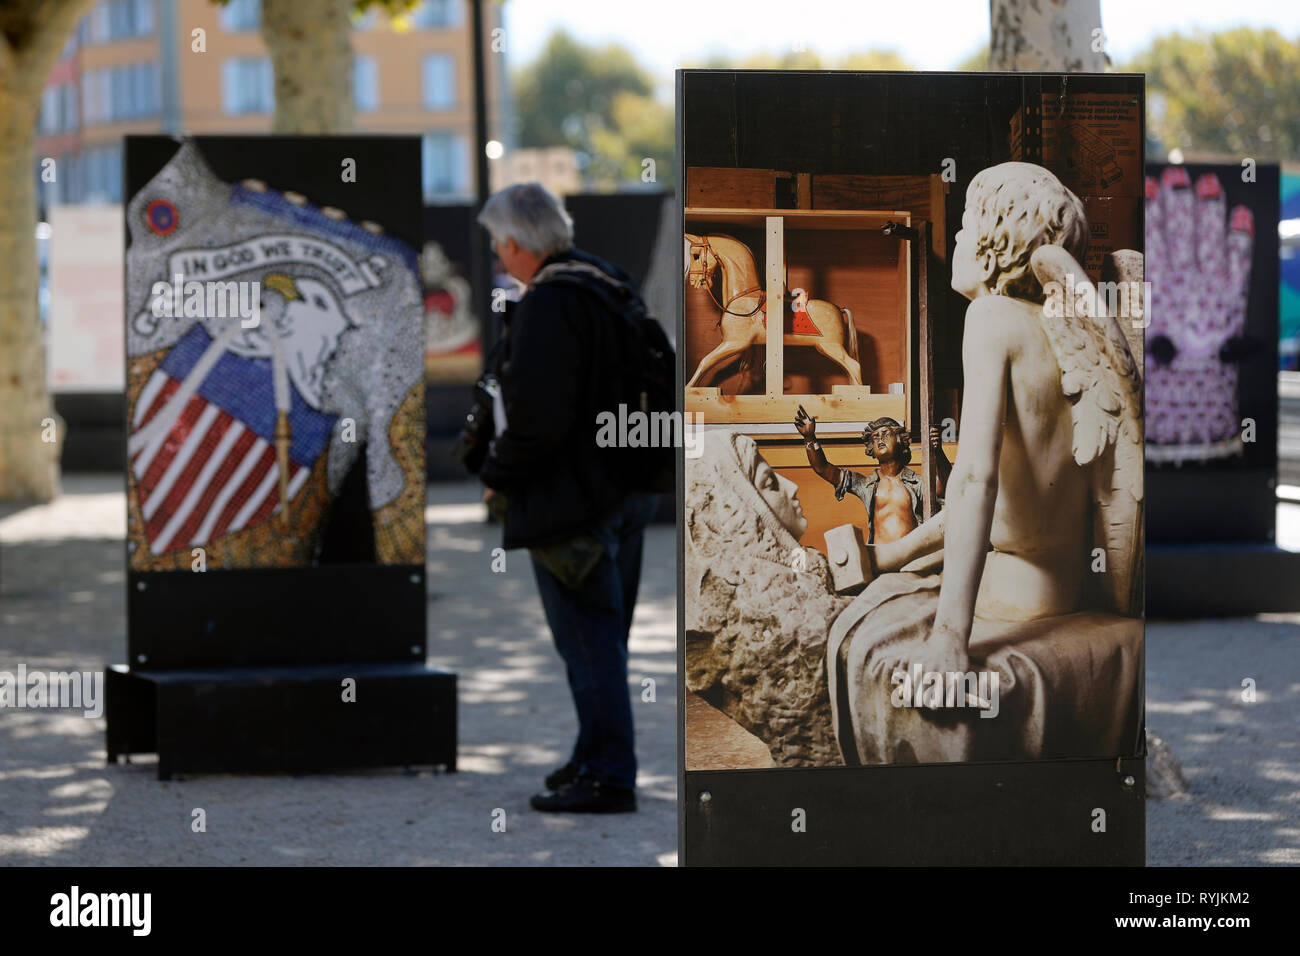 Festival Images. Visual arts biennal of Vevey.  Switzerland. - Stock Image